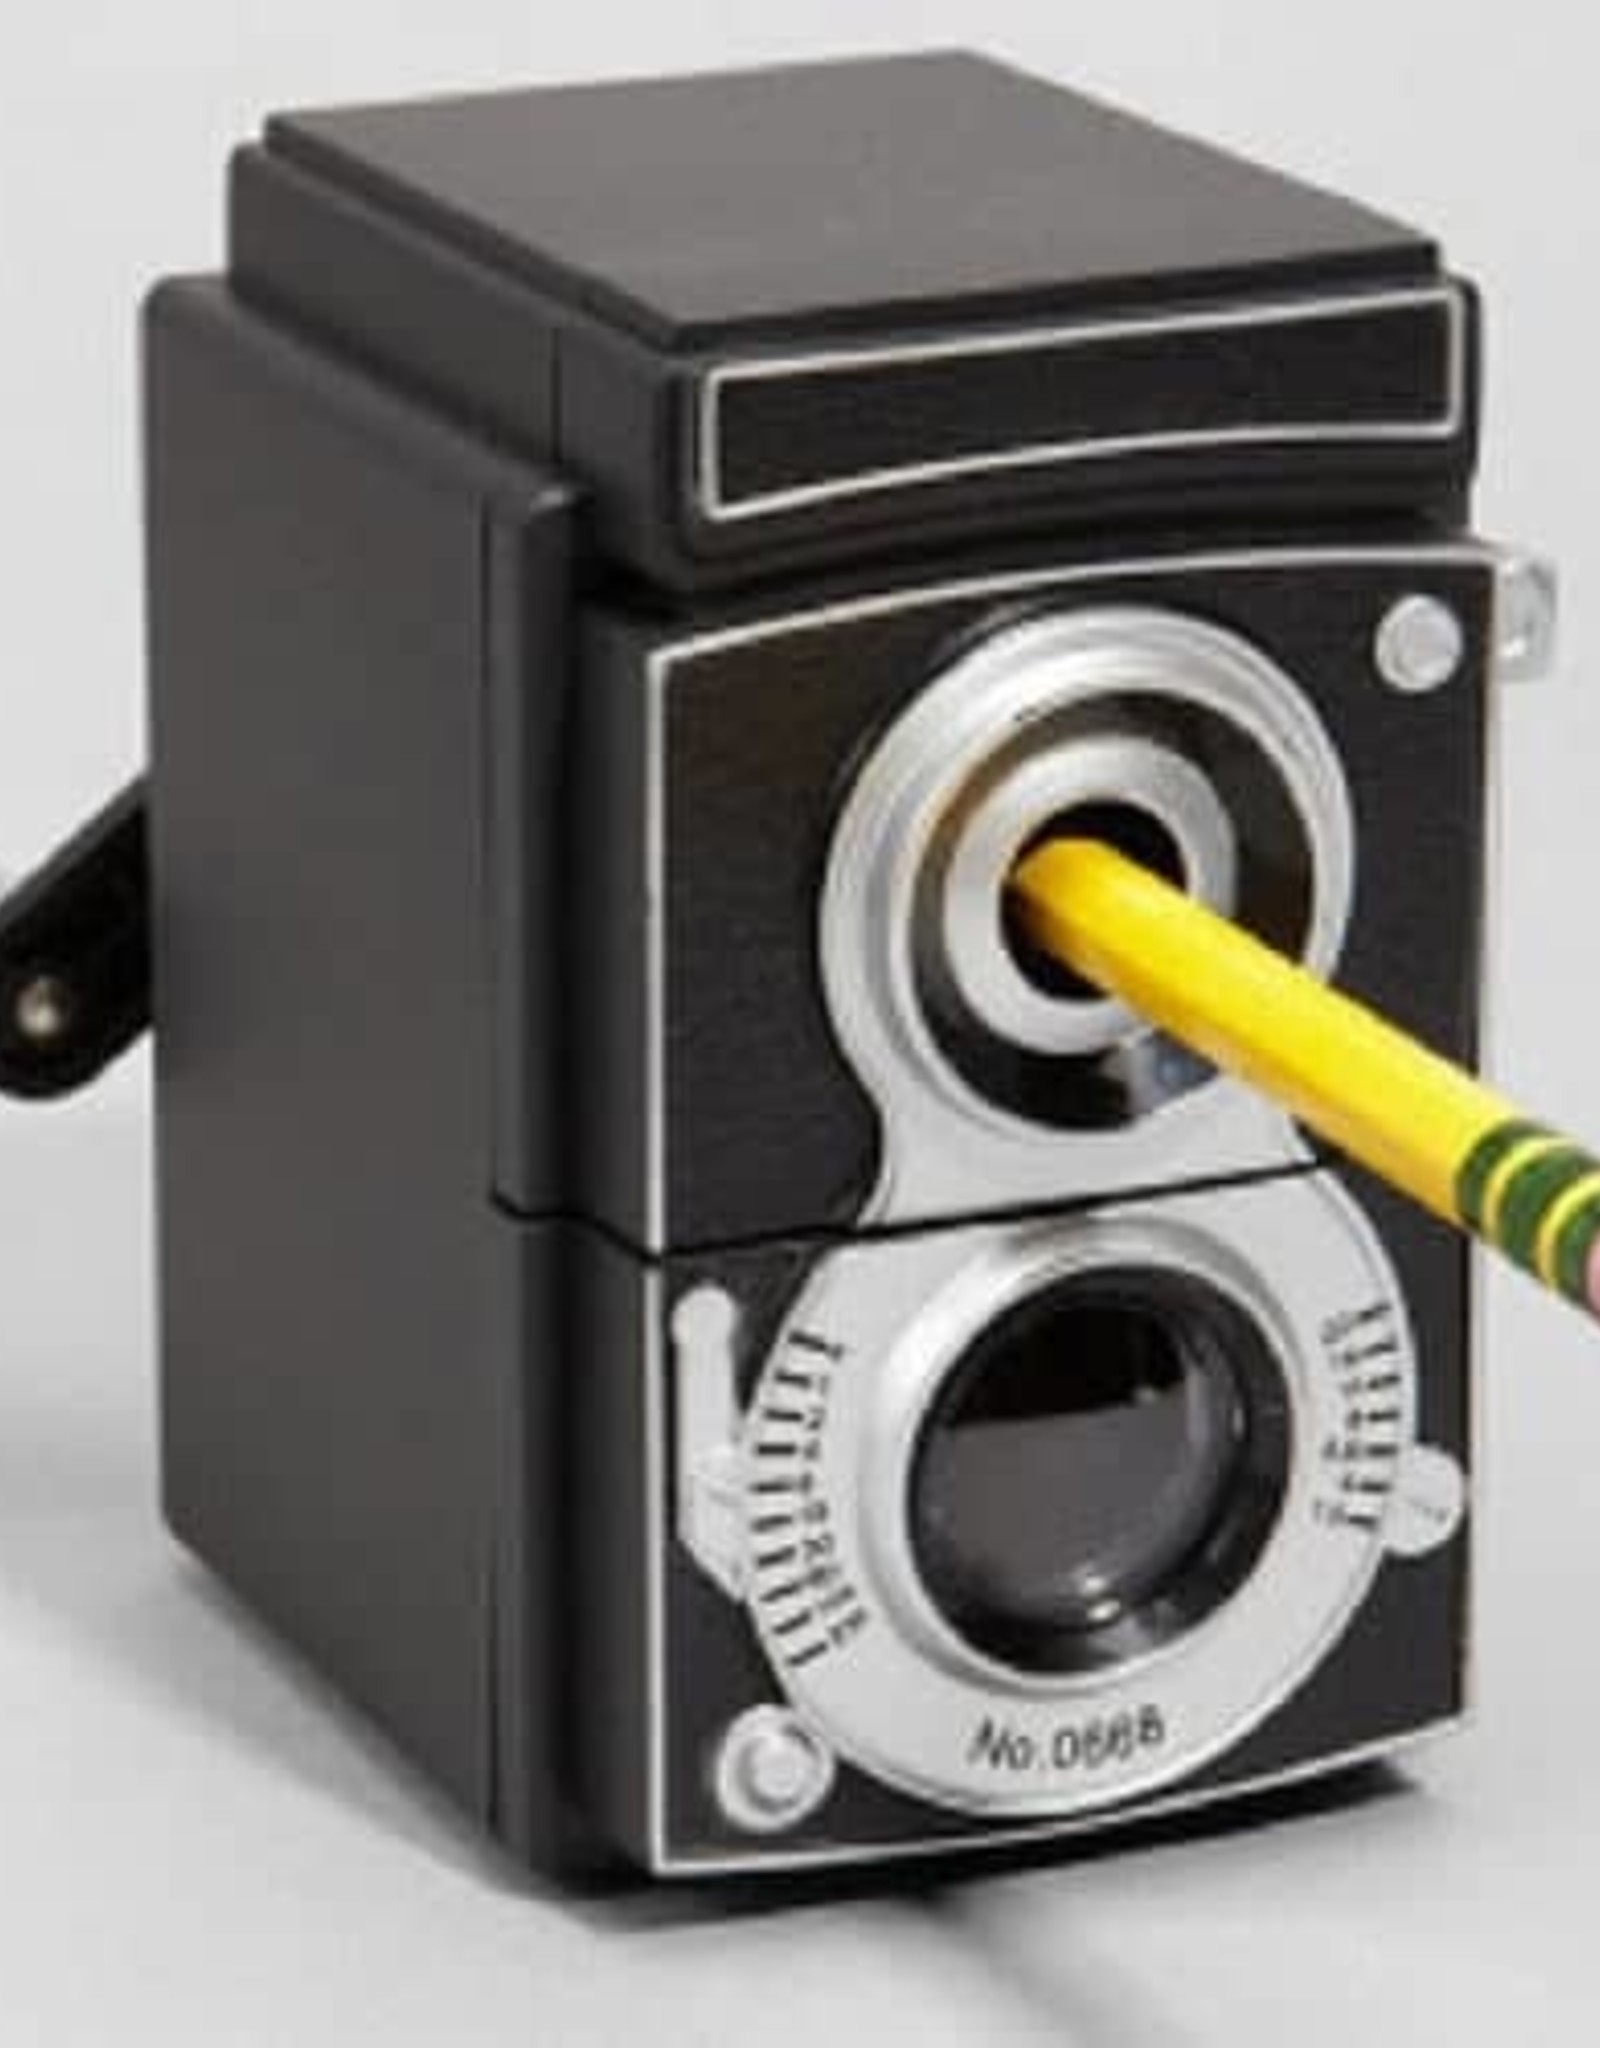 Kikkerland Pencil Sharpener Camera